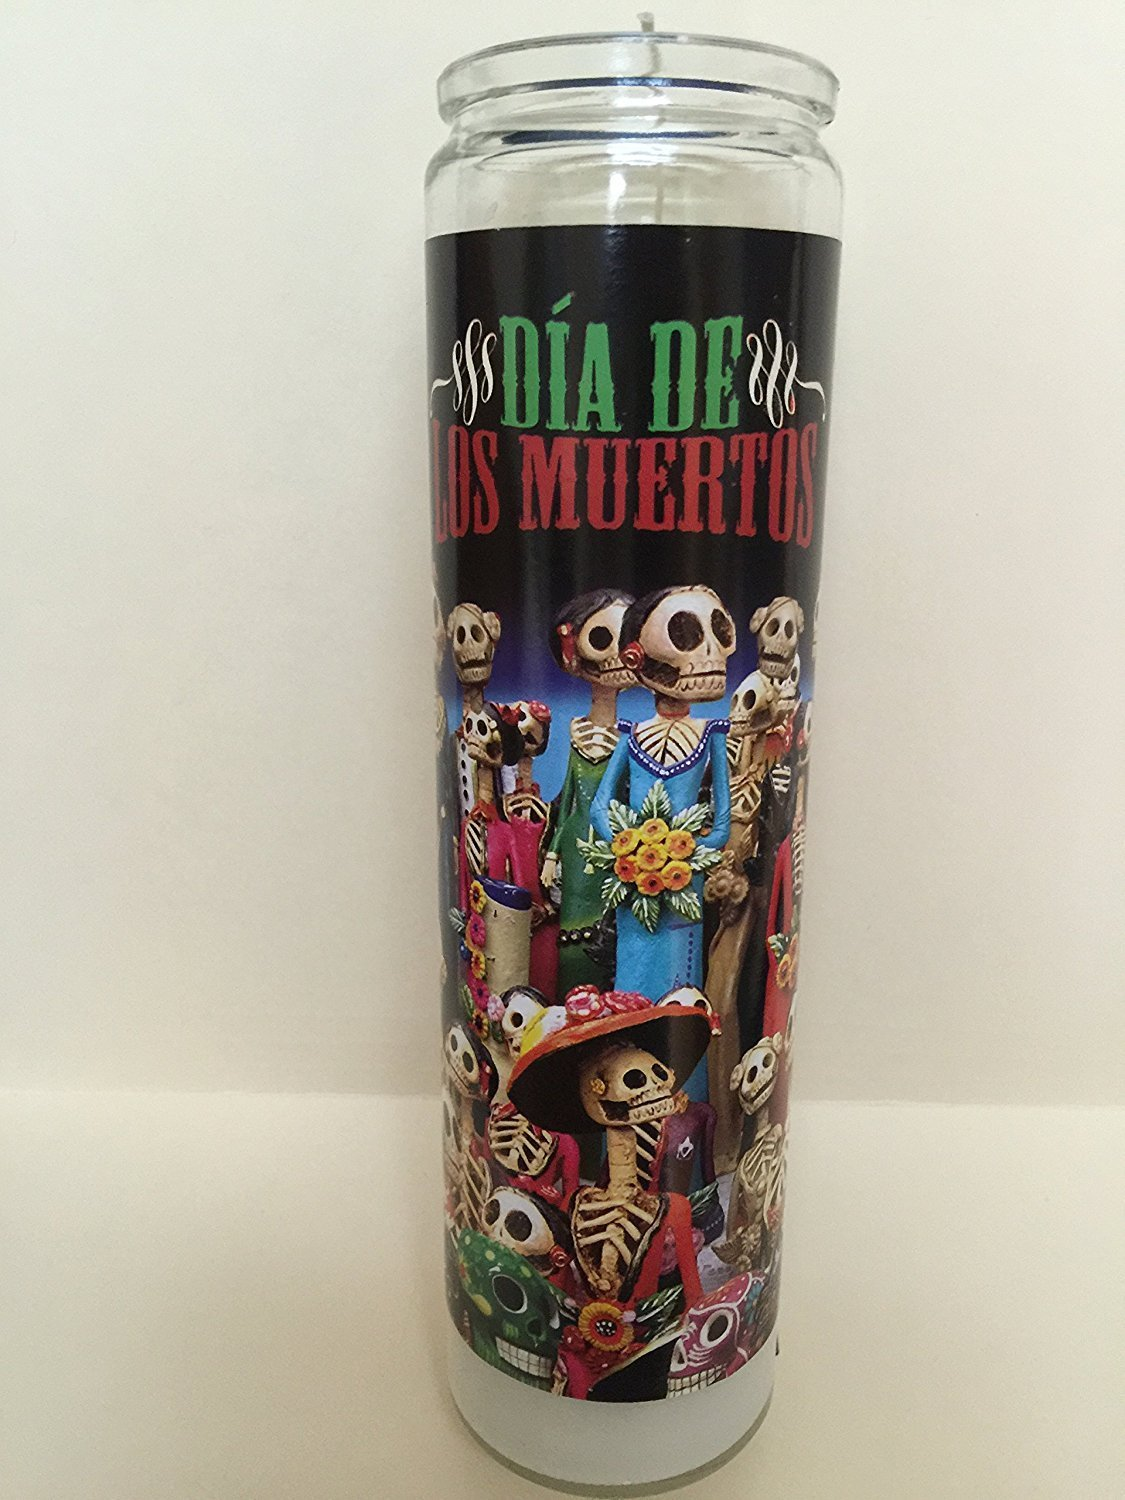 "CYBER MONDAY WEEK DEAL! CYBER MONDAY WEEK DEAL! Religious Prayer Candle | Day of the Dead Candle (Dia de los Muertos #1) Unscented (1) | 8"" Tall Jar Candle for Candlelight Vigils"